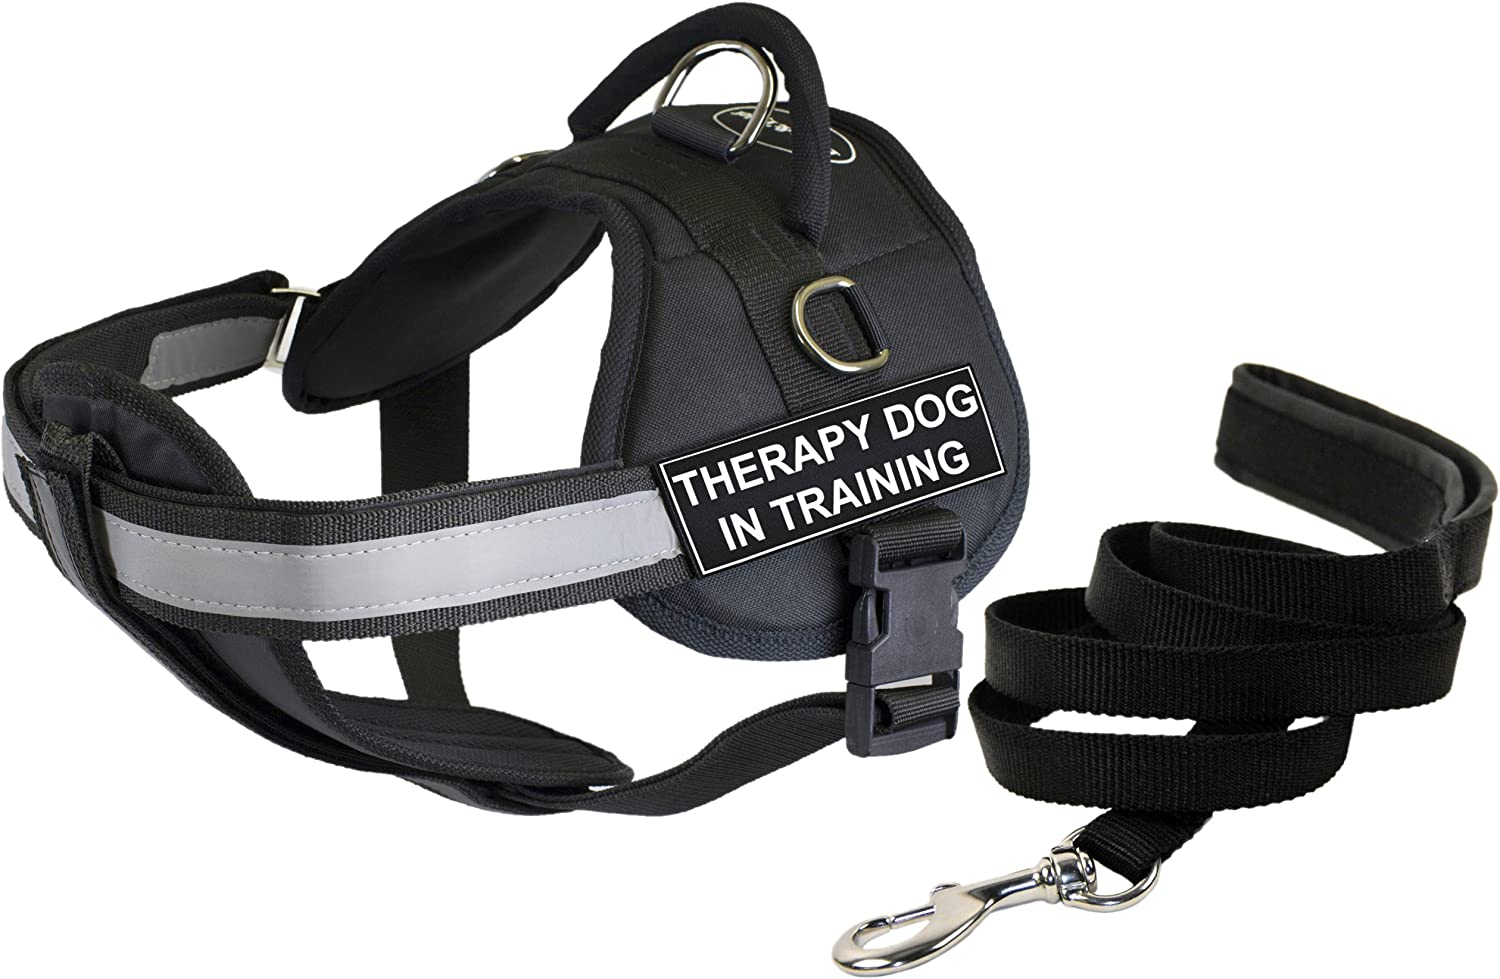 Dean & Tyler 25 by 34Inch Therapy Dog in Training Pet Harness with Padded Puppy Leash, Small